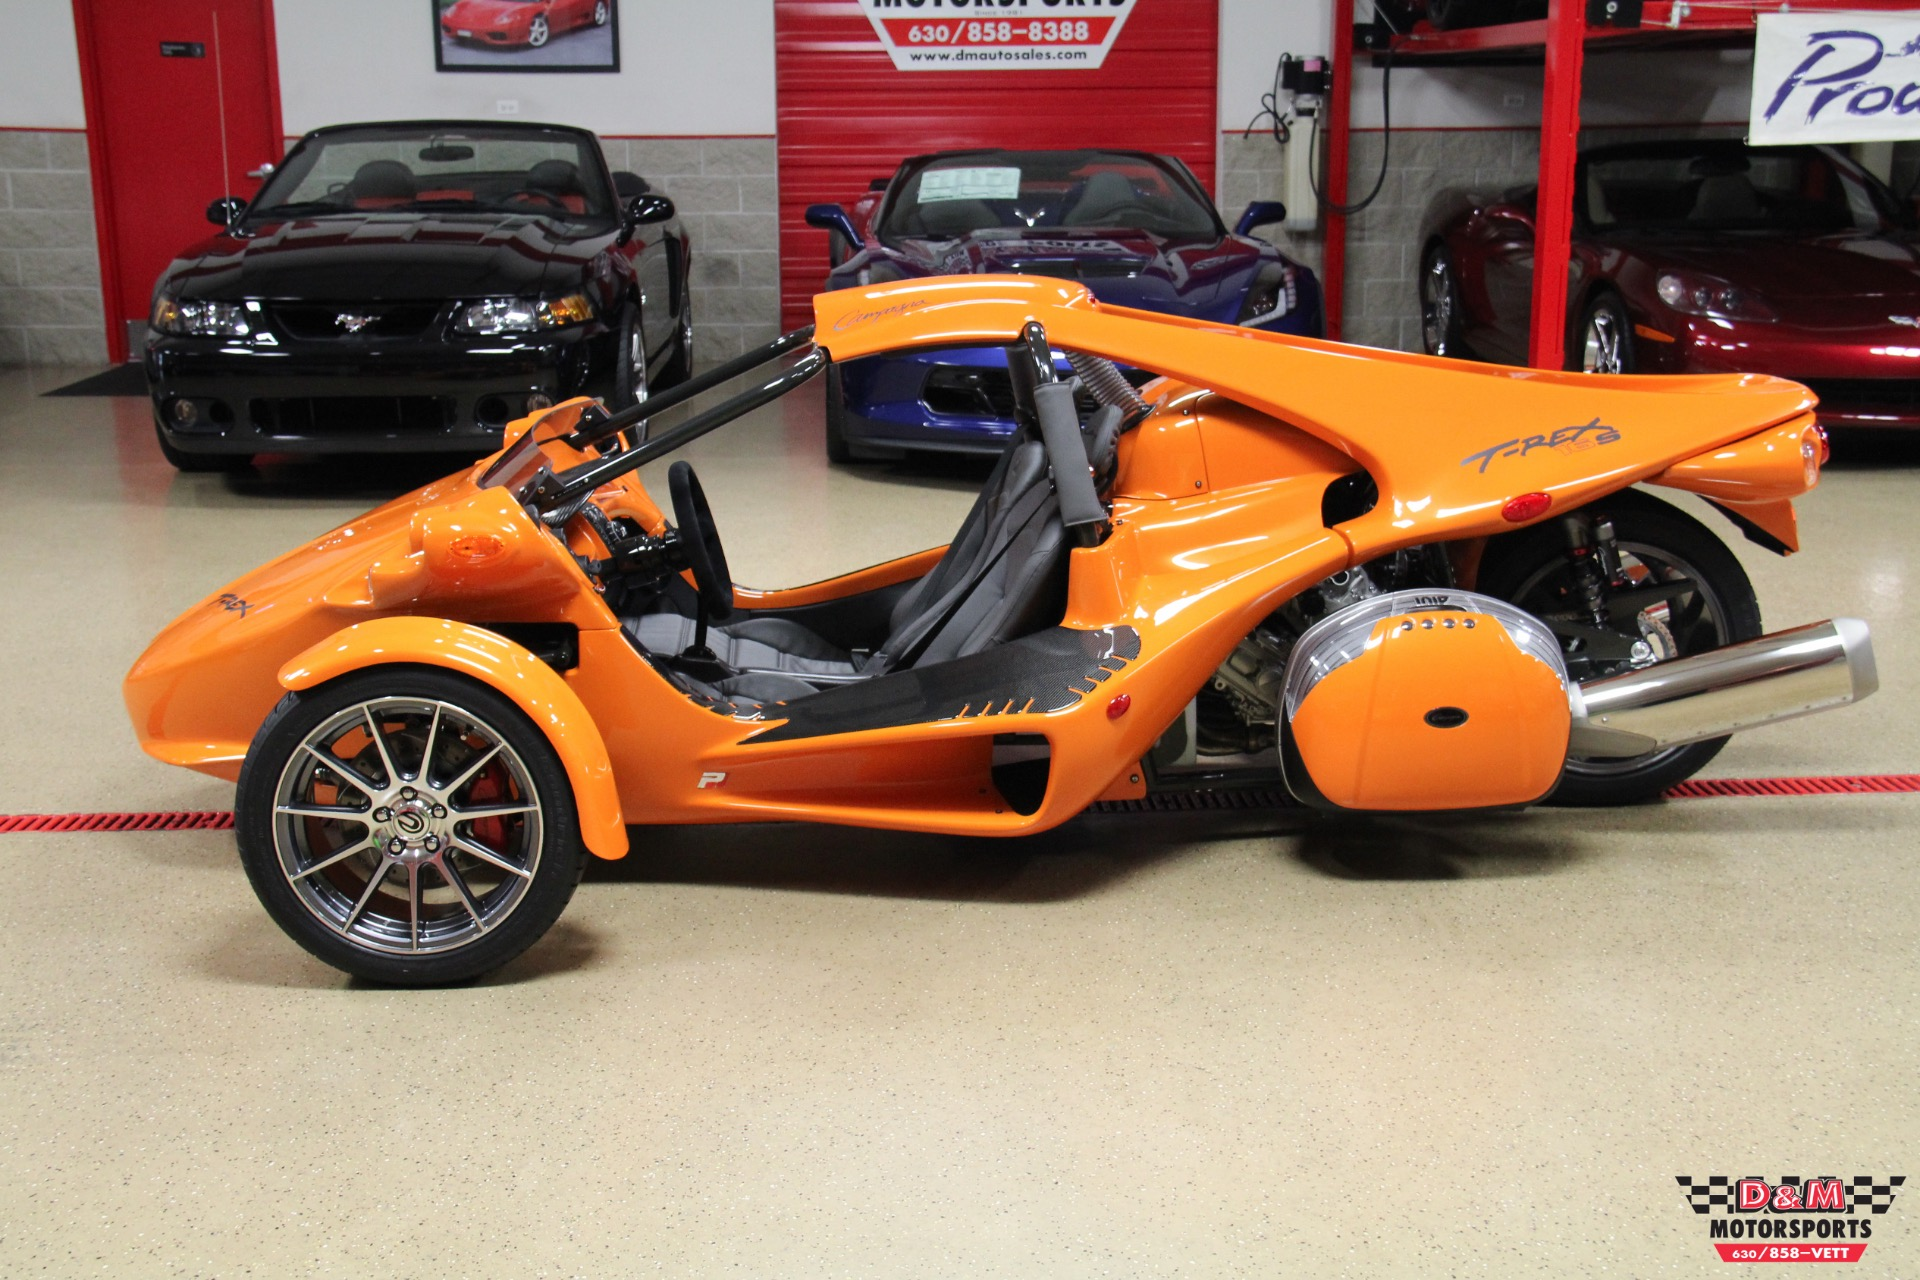 2016 campagna t rex 16sp 2 miles blaze orange new campagna t rex for sale in glen ellyn. Black Bedroom Furniture Sets. Home Design Ideas